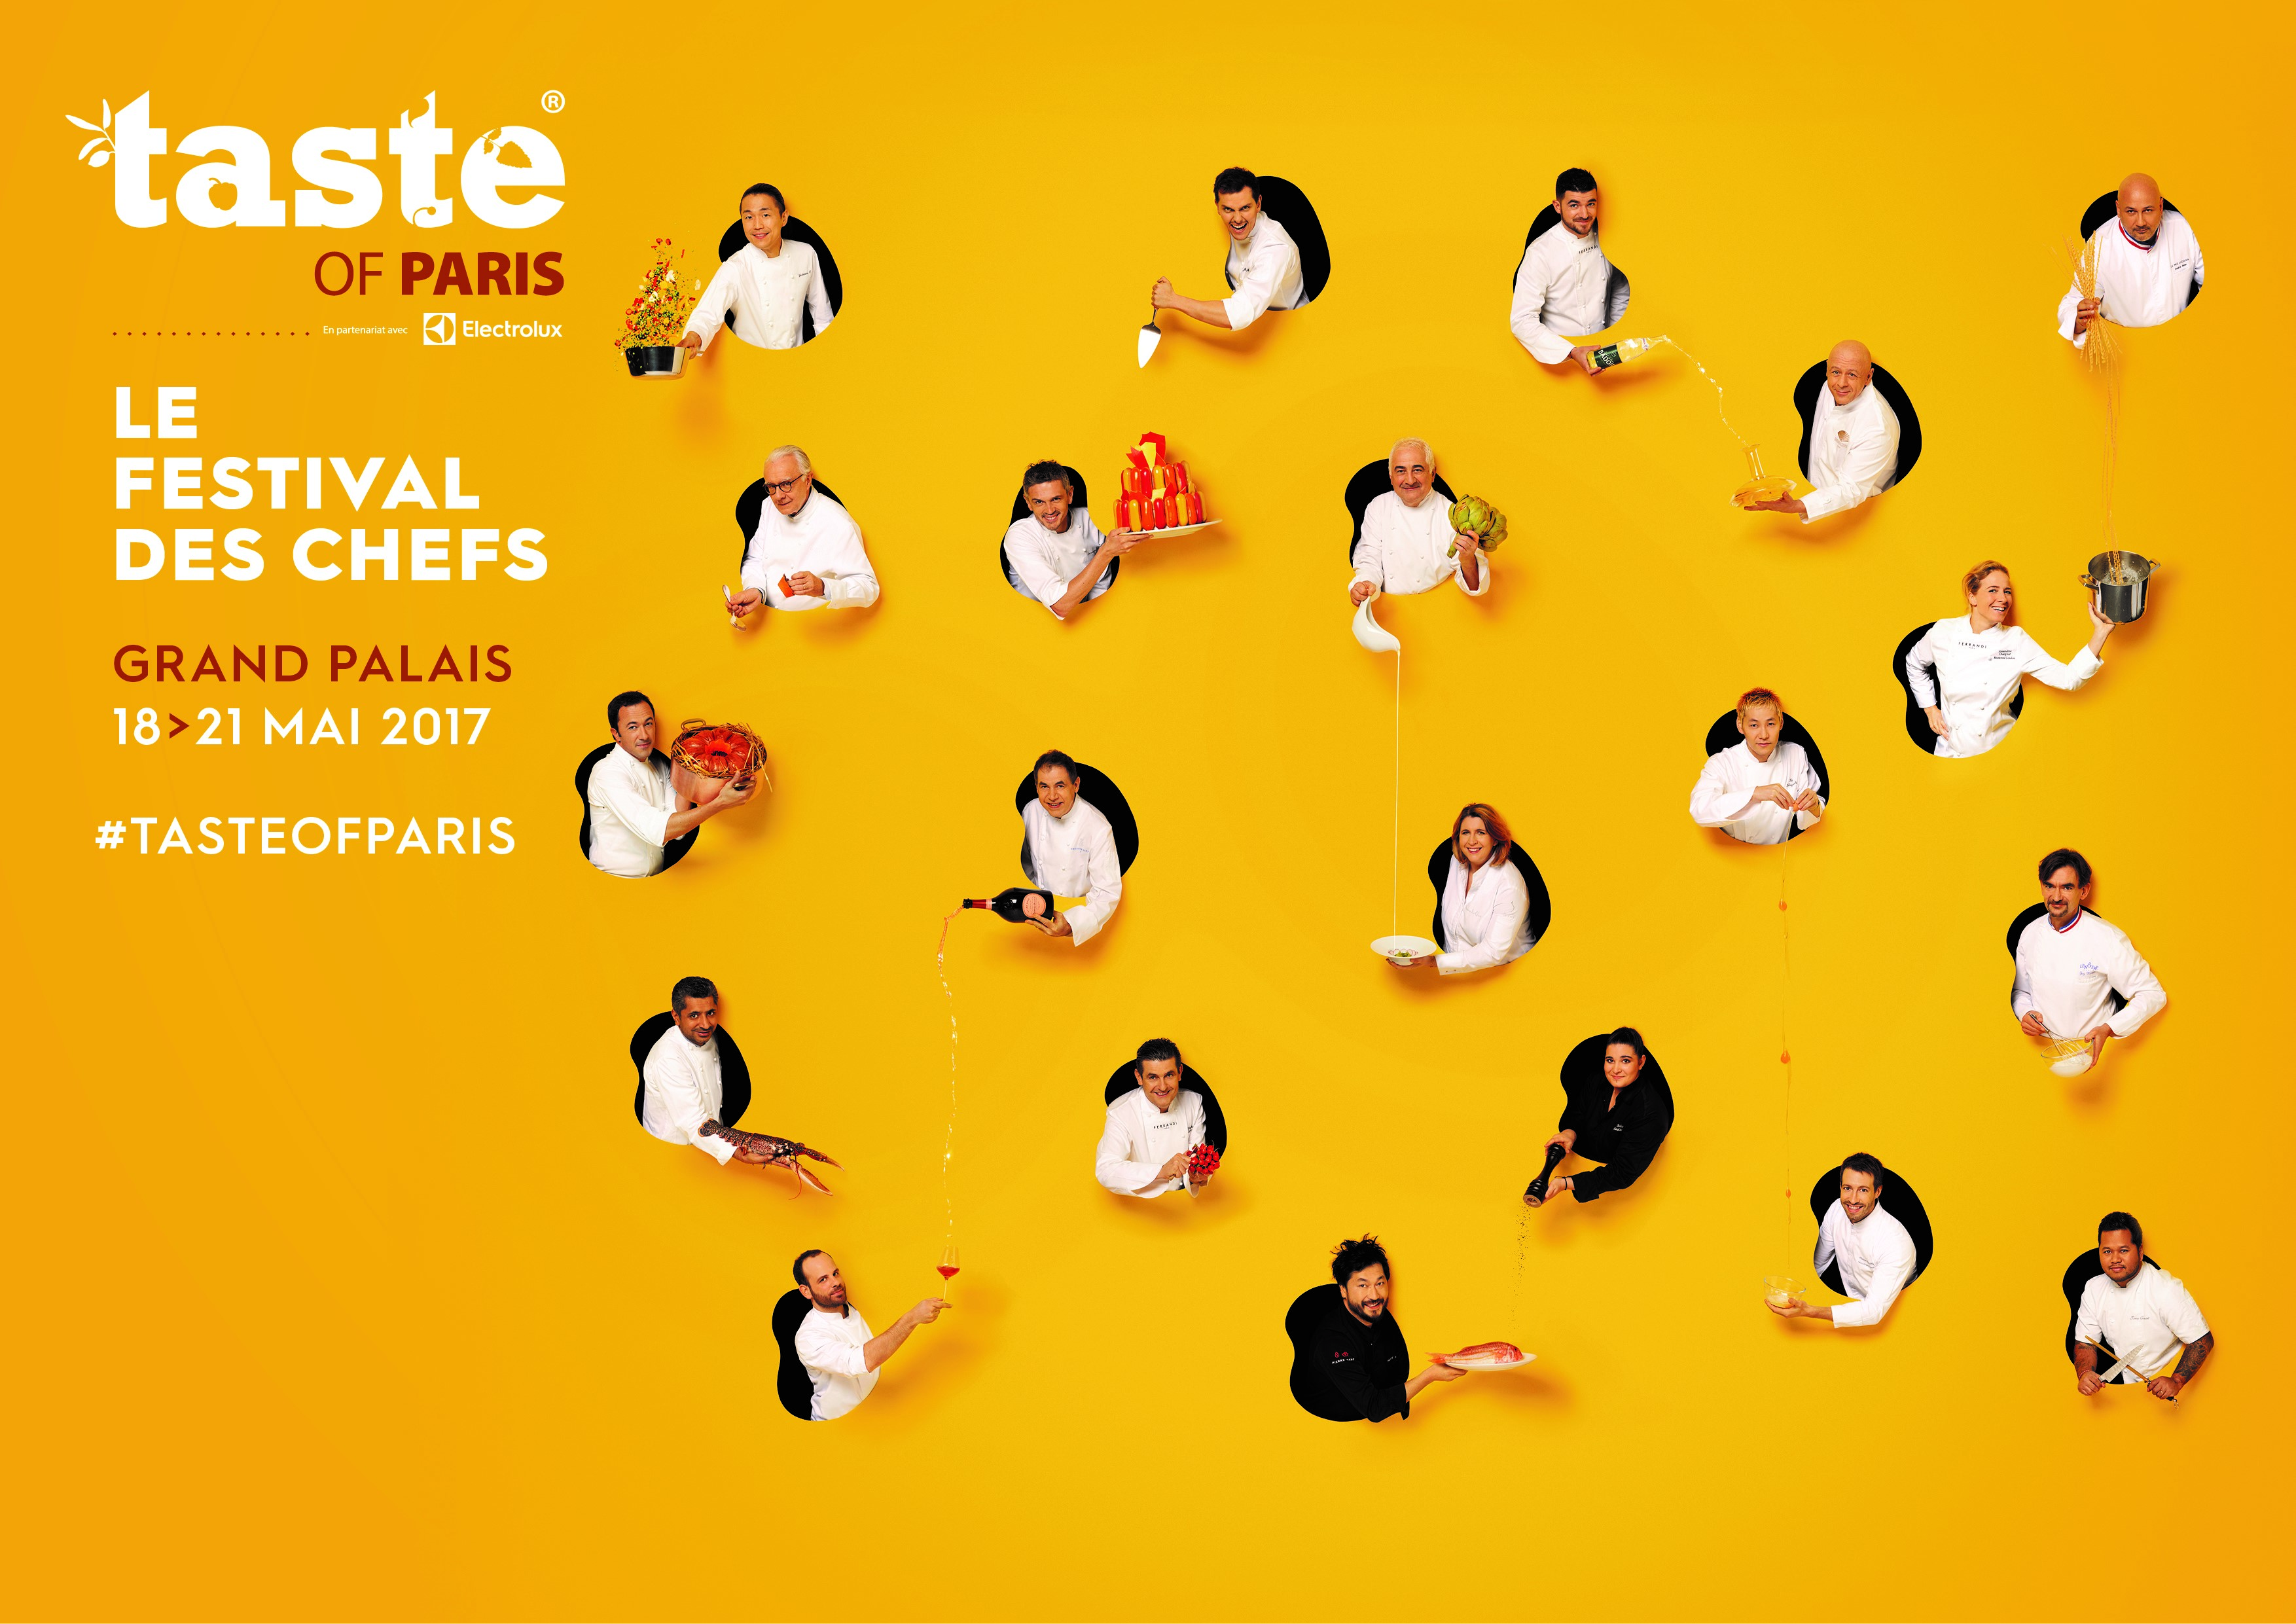 taste-of-paris-2017